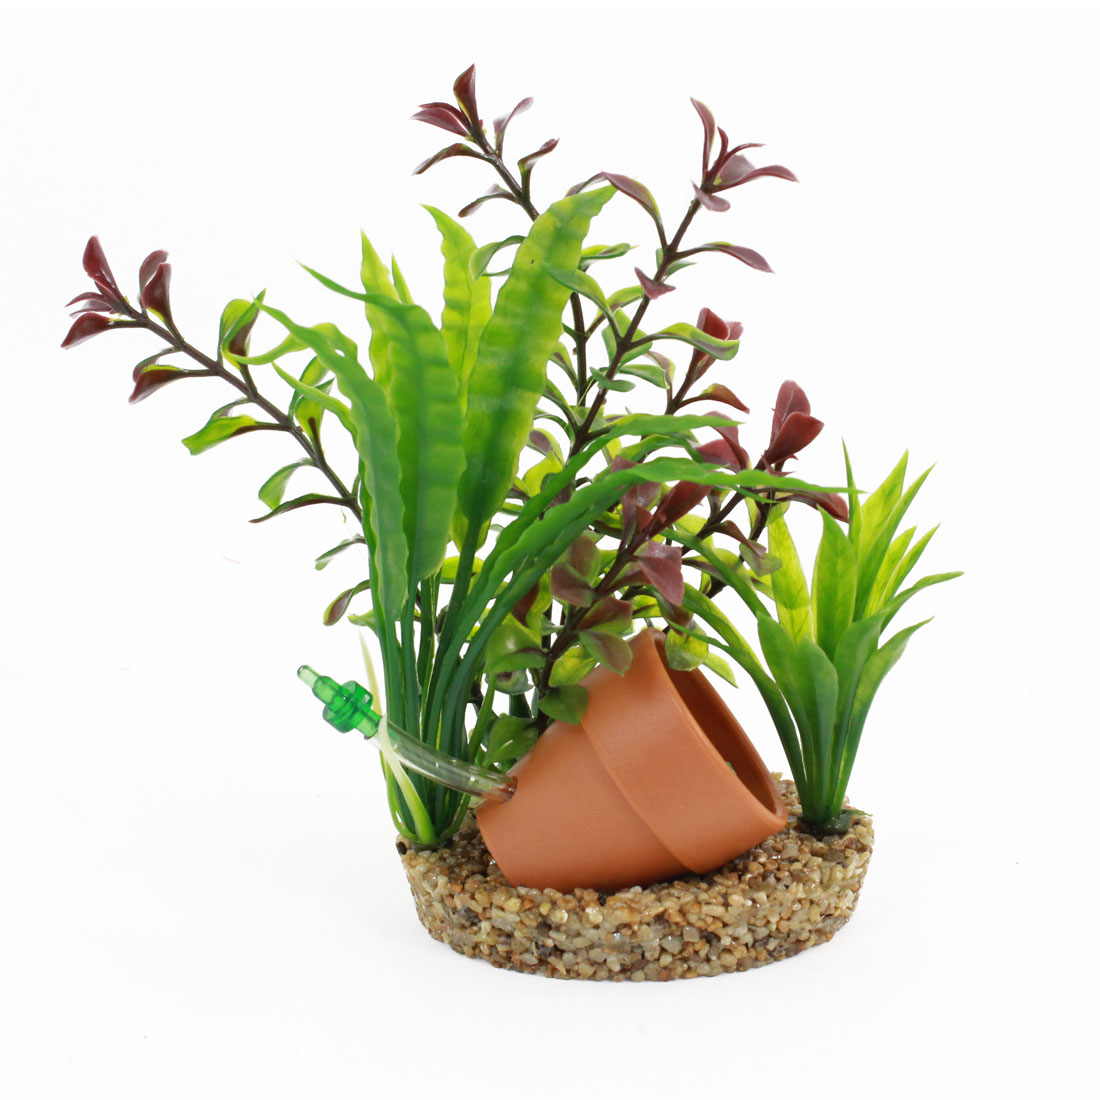 "Fish Bowl Decor Simulation Orange Pot Detailing Green Water Plant 6.7"" Height"